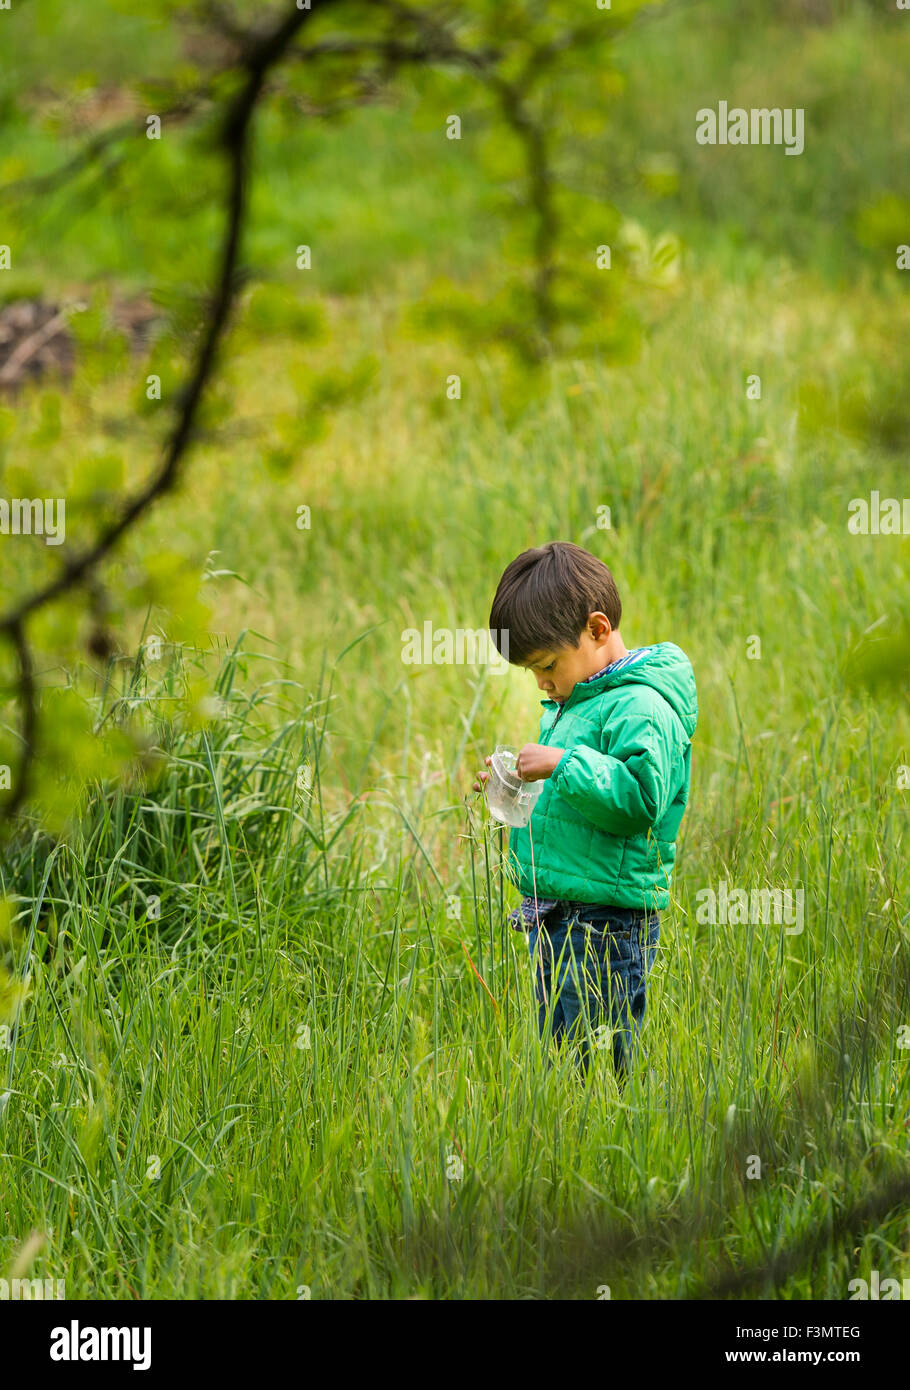 Young Asian boy collects insects in tall grass - Stock Image